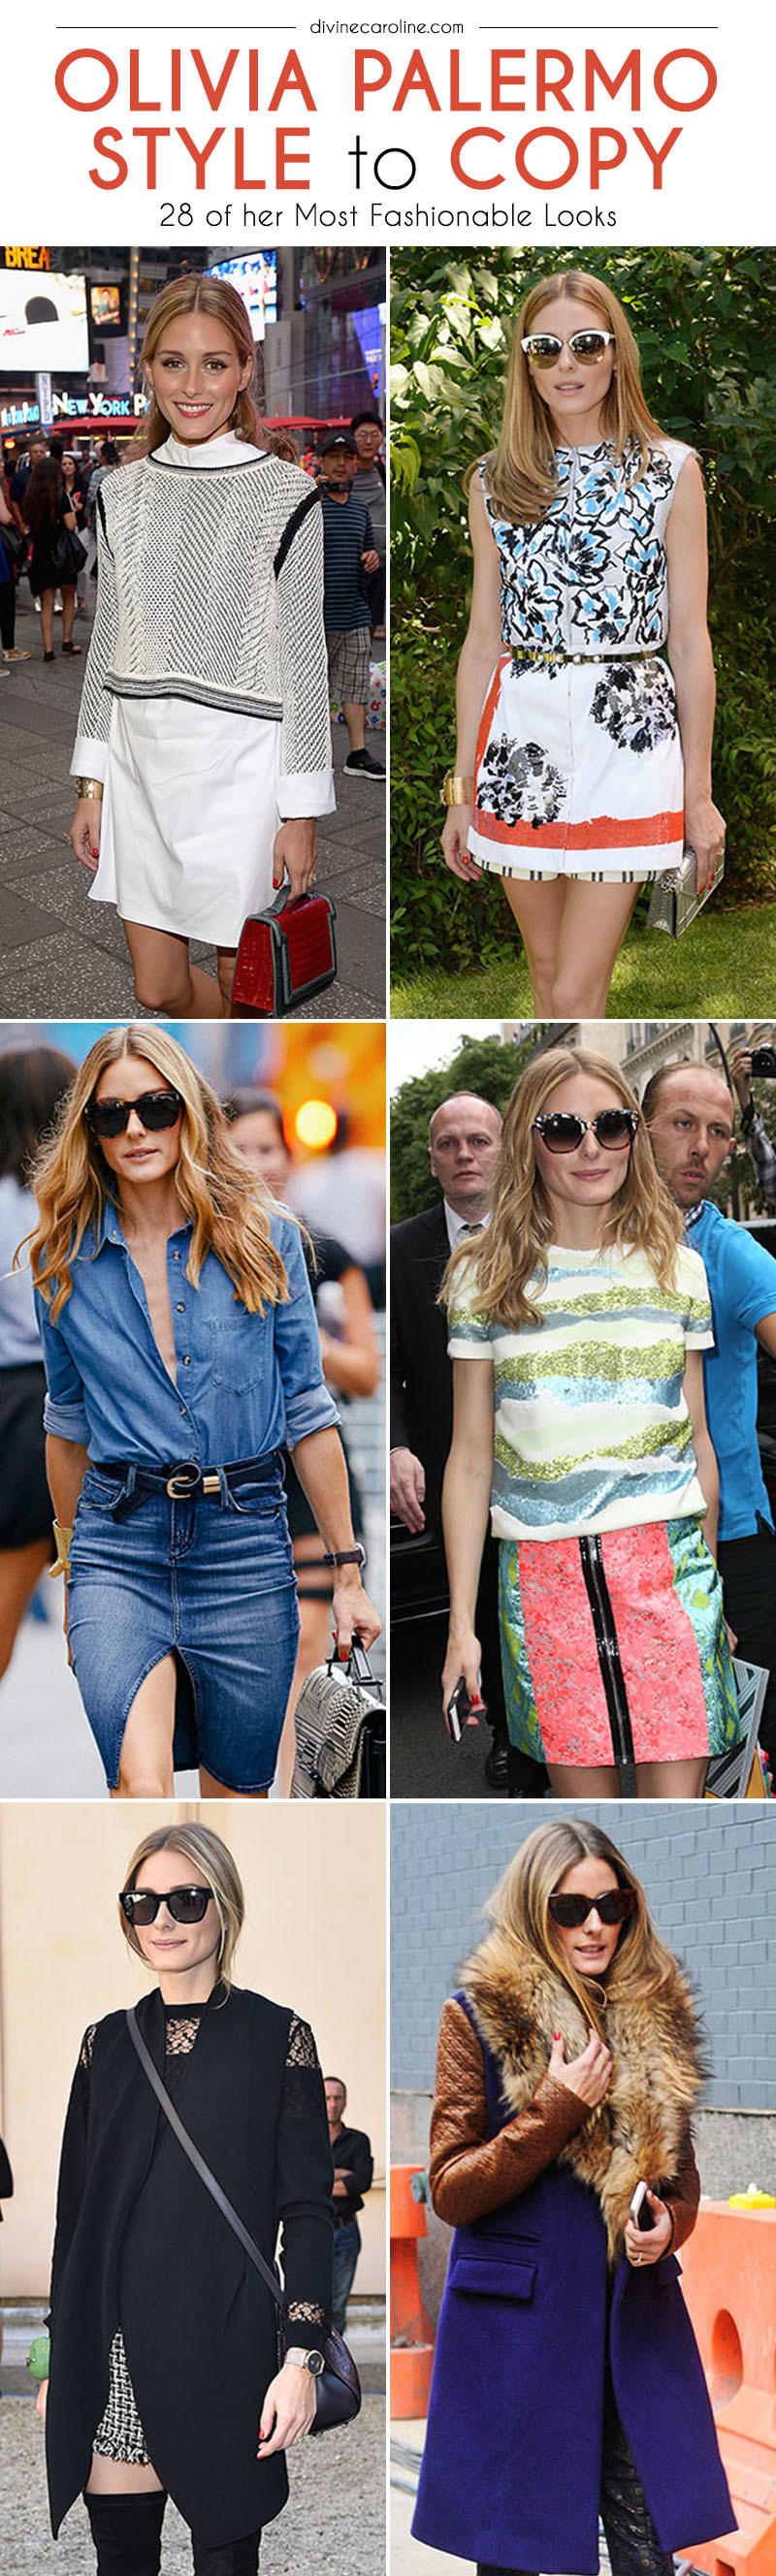 The Ultimate Olivia Palermo Style Guide Tips To Steal Her Look